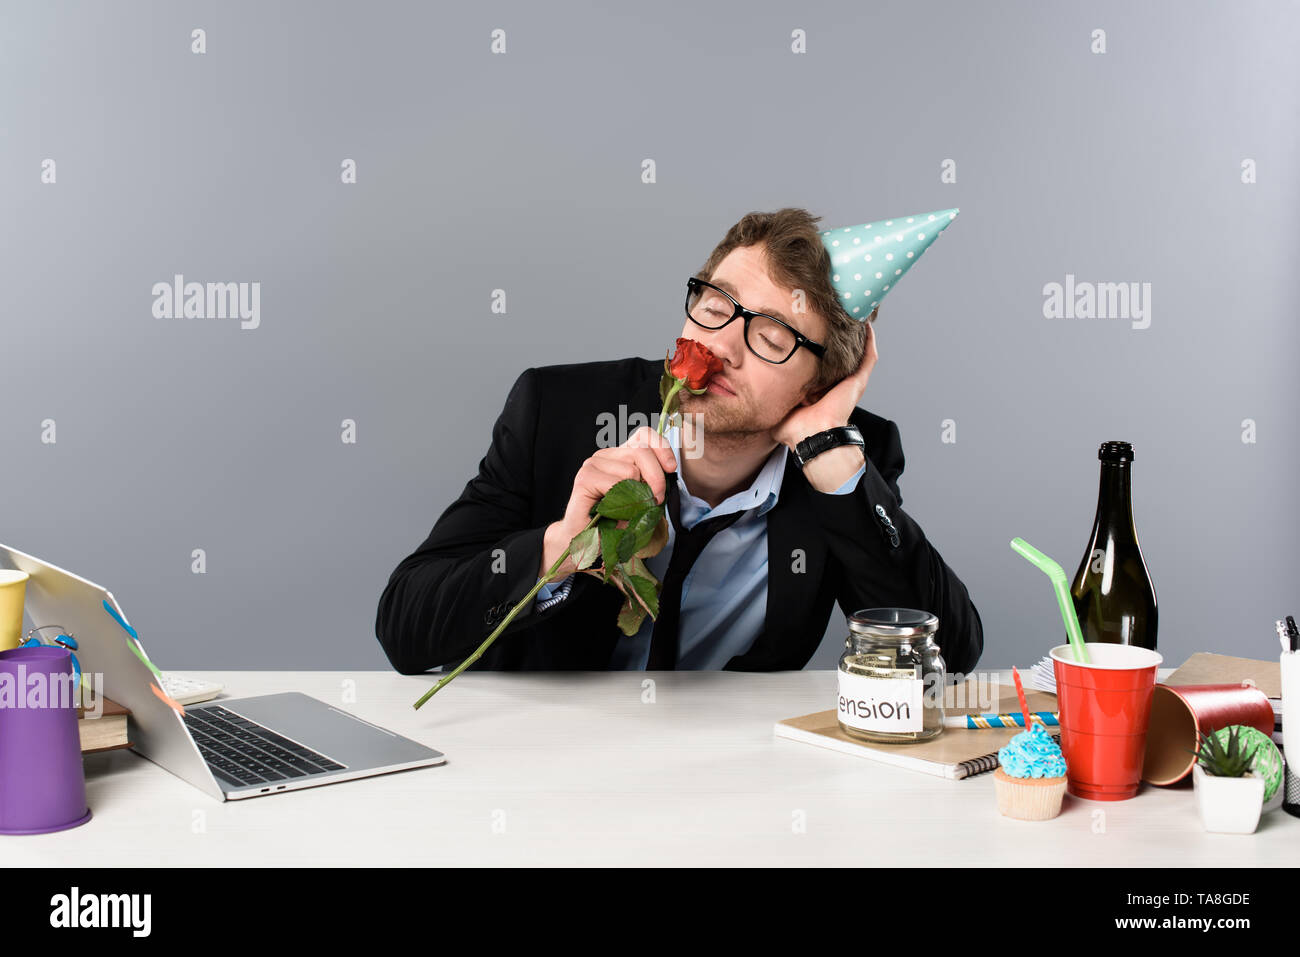 drunk businessman in birthday cap smelling rose at workplace - Stock Image